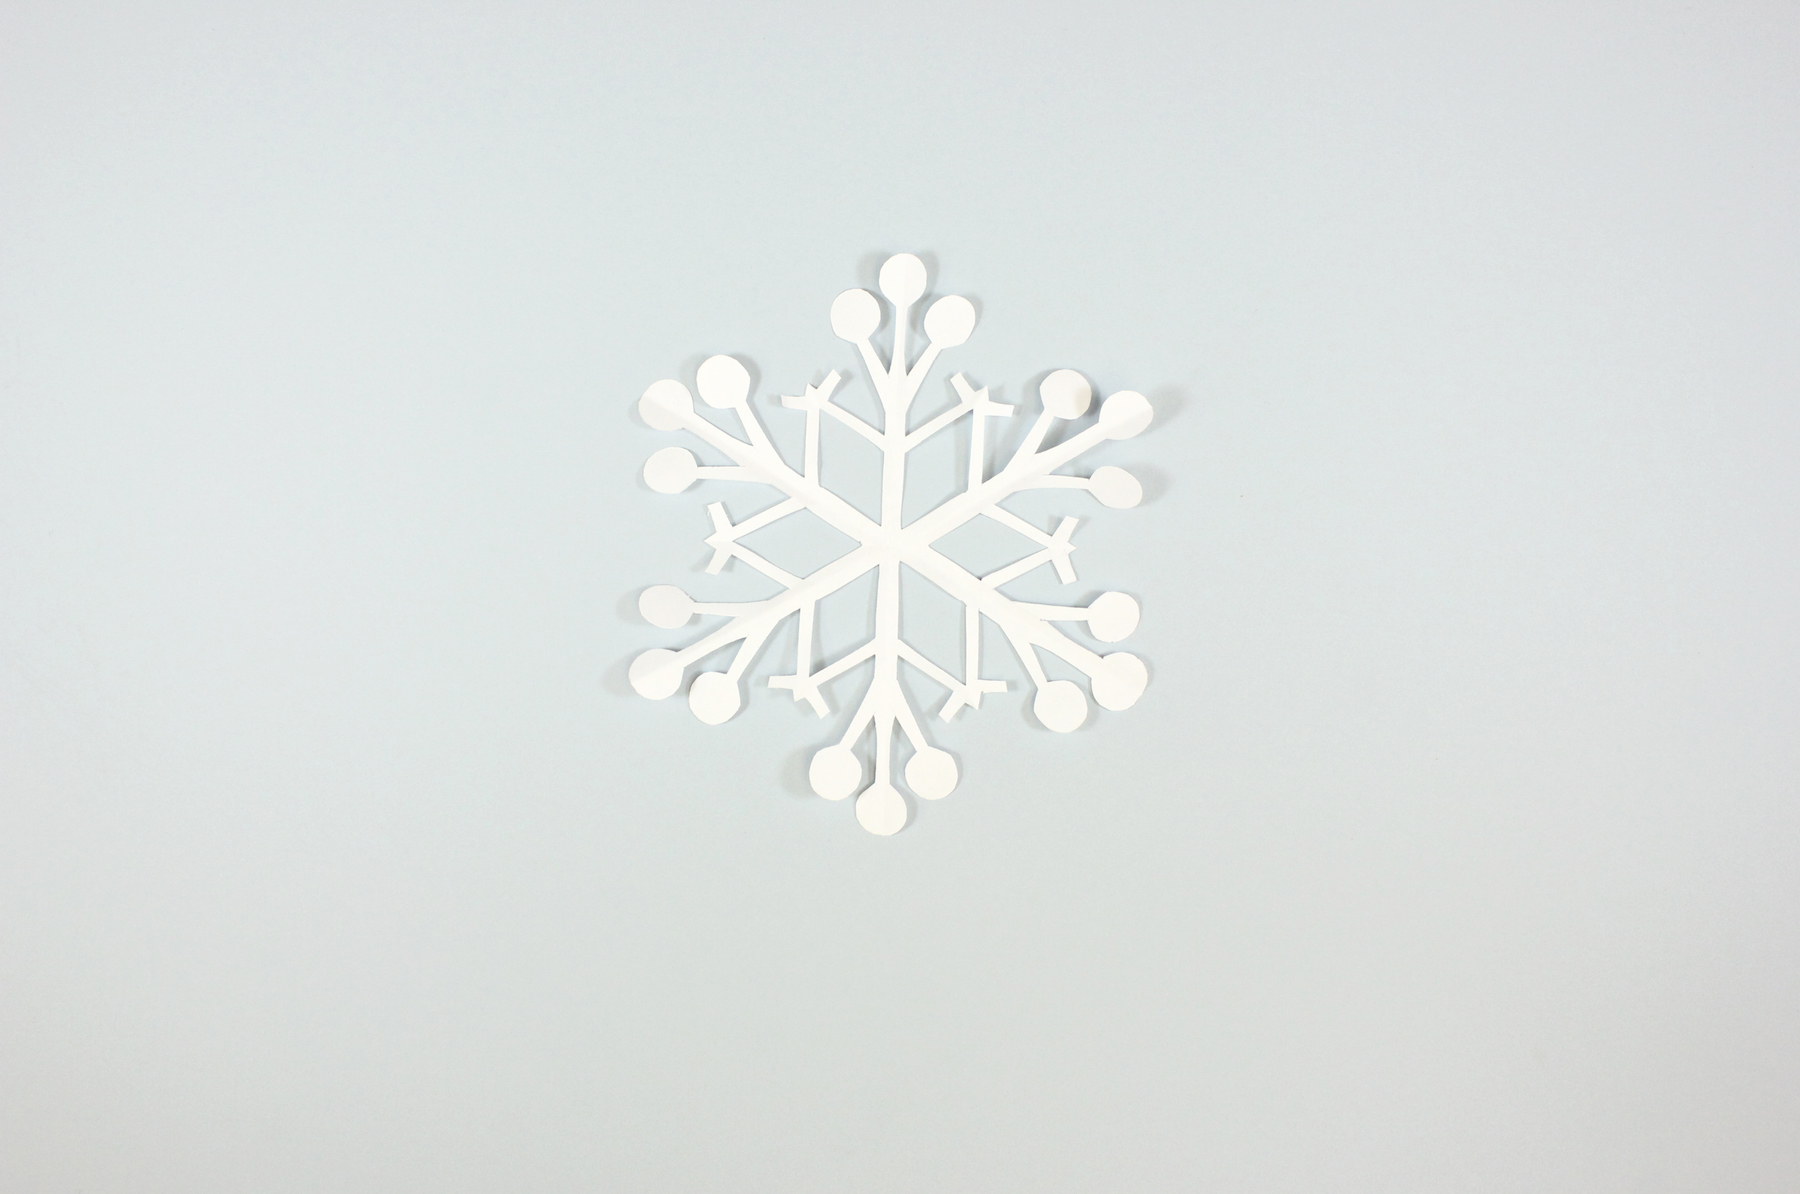 How to Make Snowflake with Paper | Making Paper Snowflakes Step by ... | 1194x1800